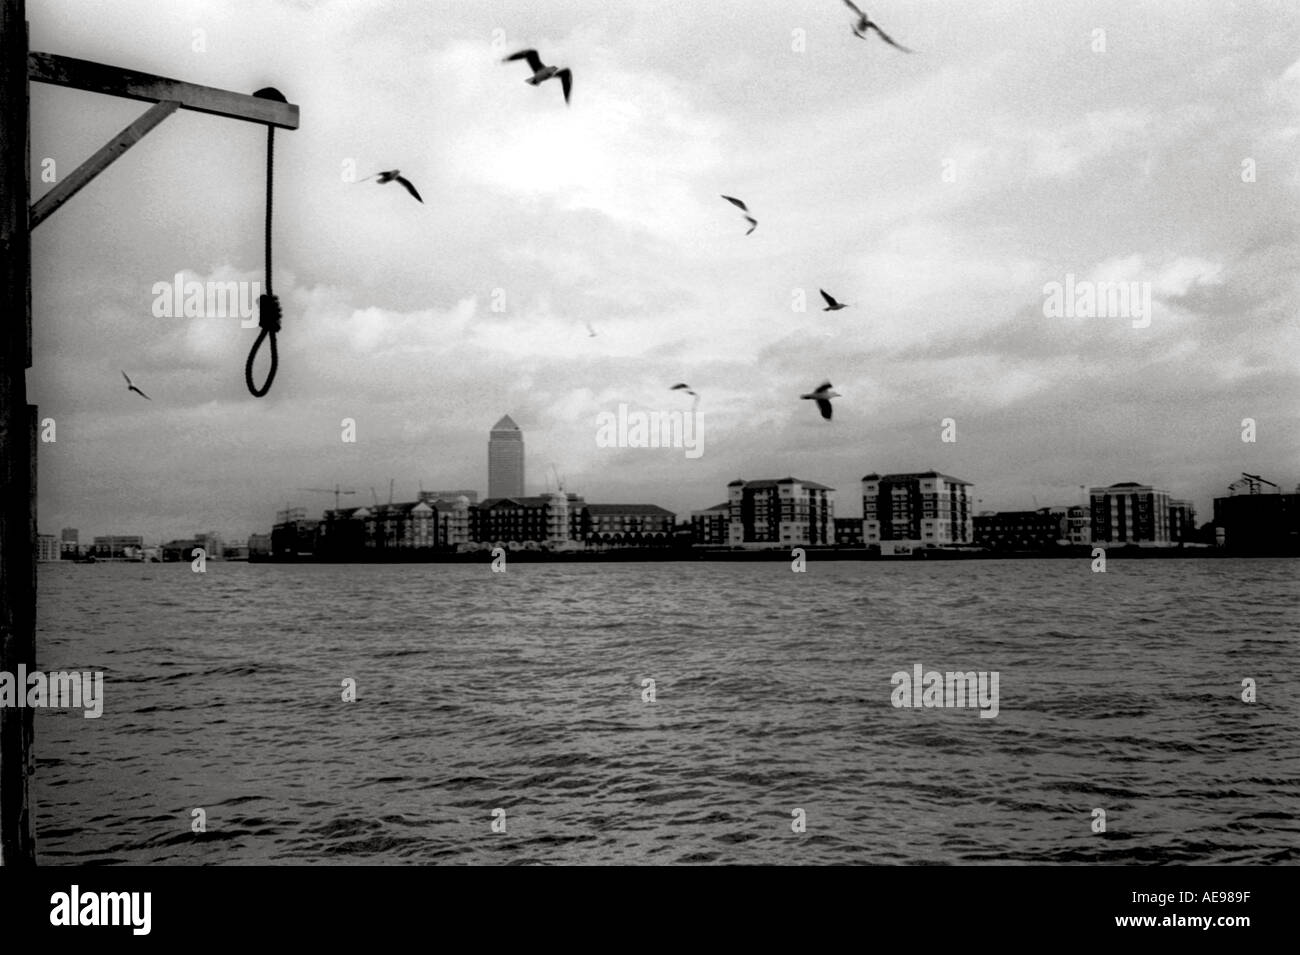 Noose hanging over the river Thames, London, England UK - Stock Image